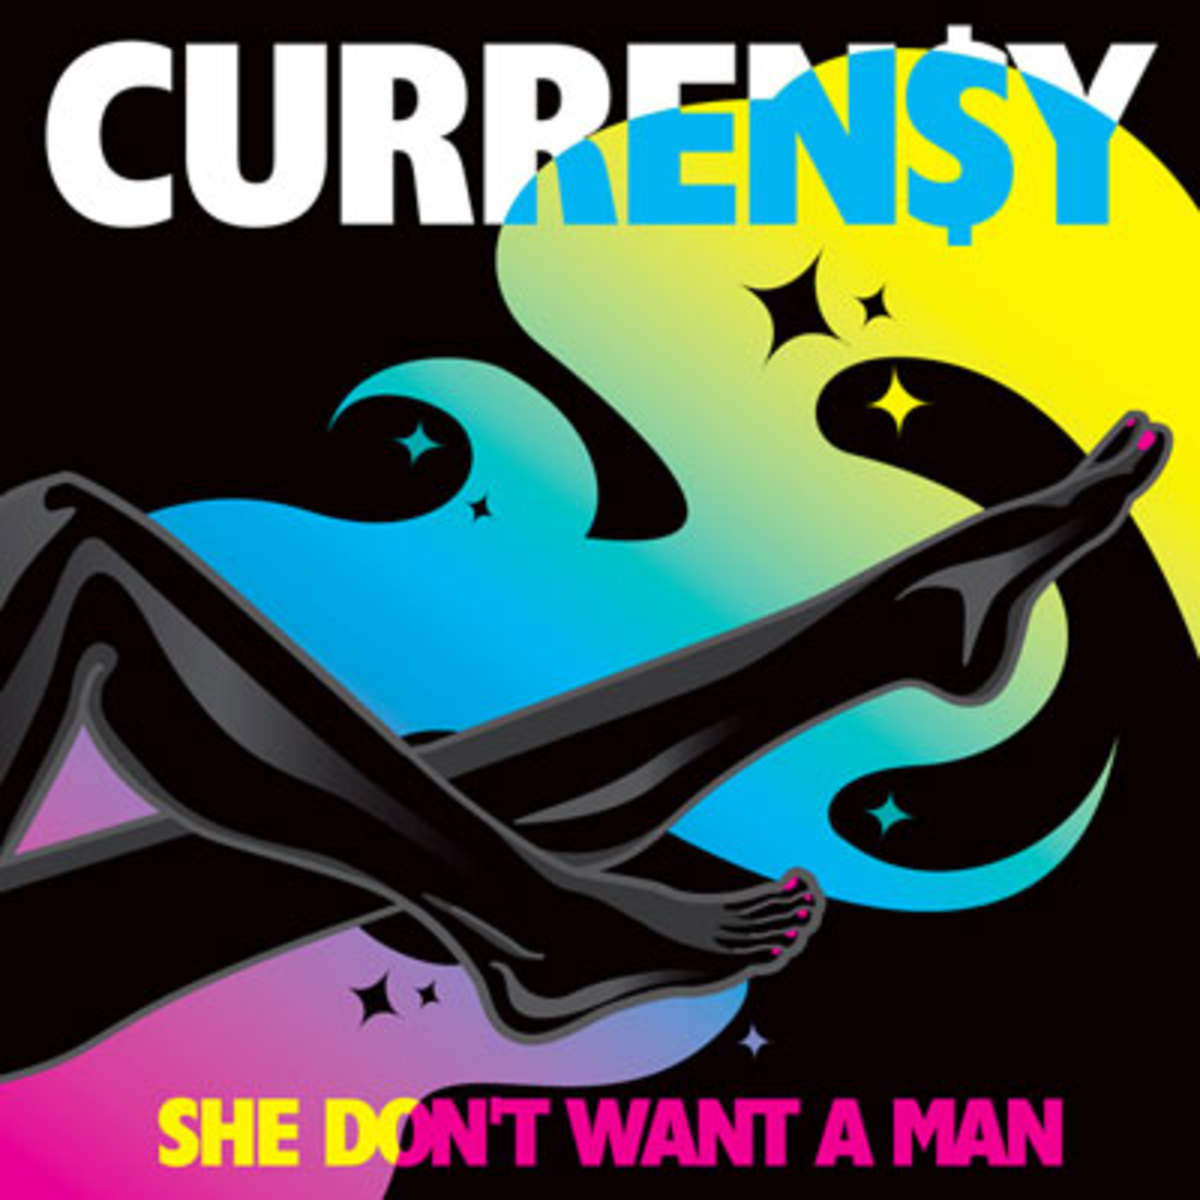 currensy-shedontwantaman.jpg